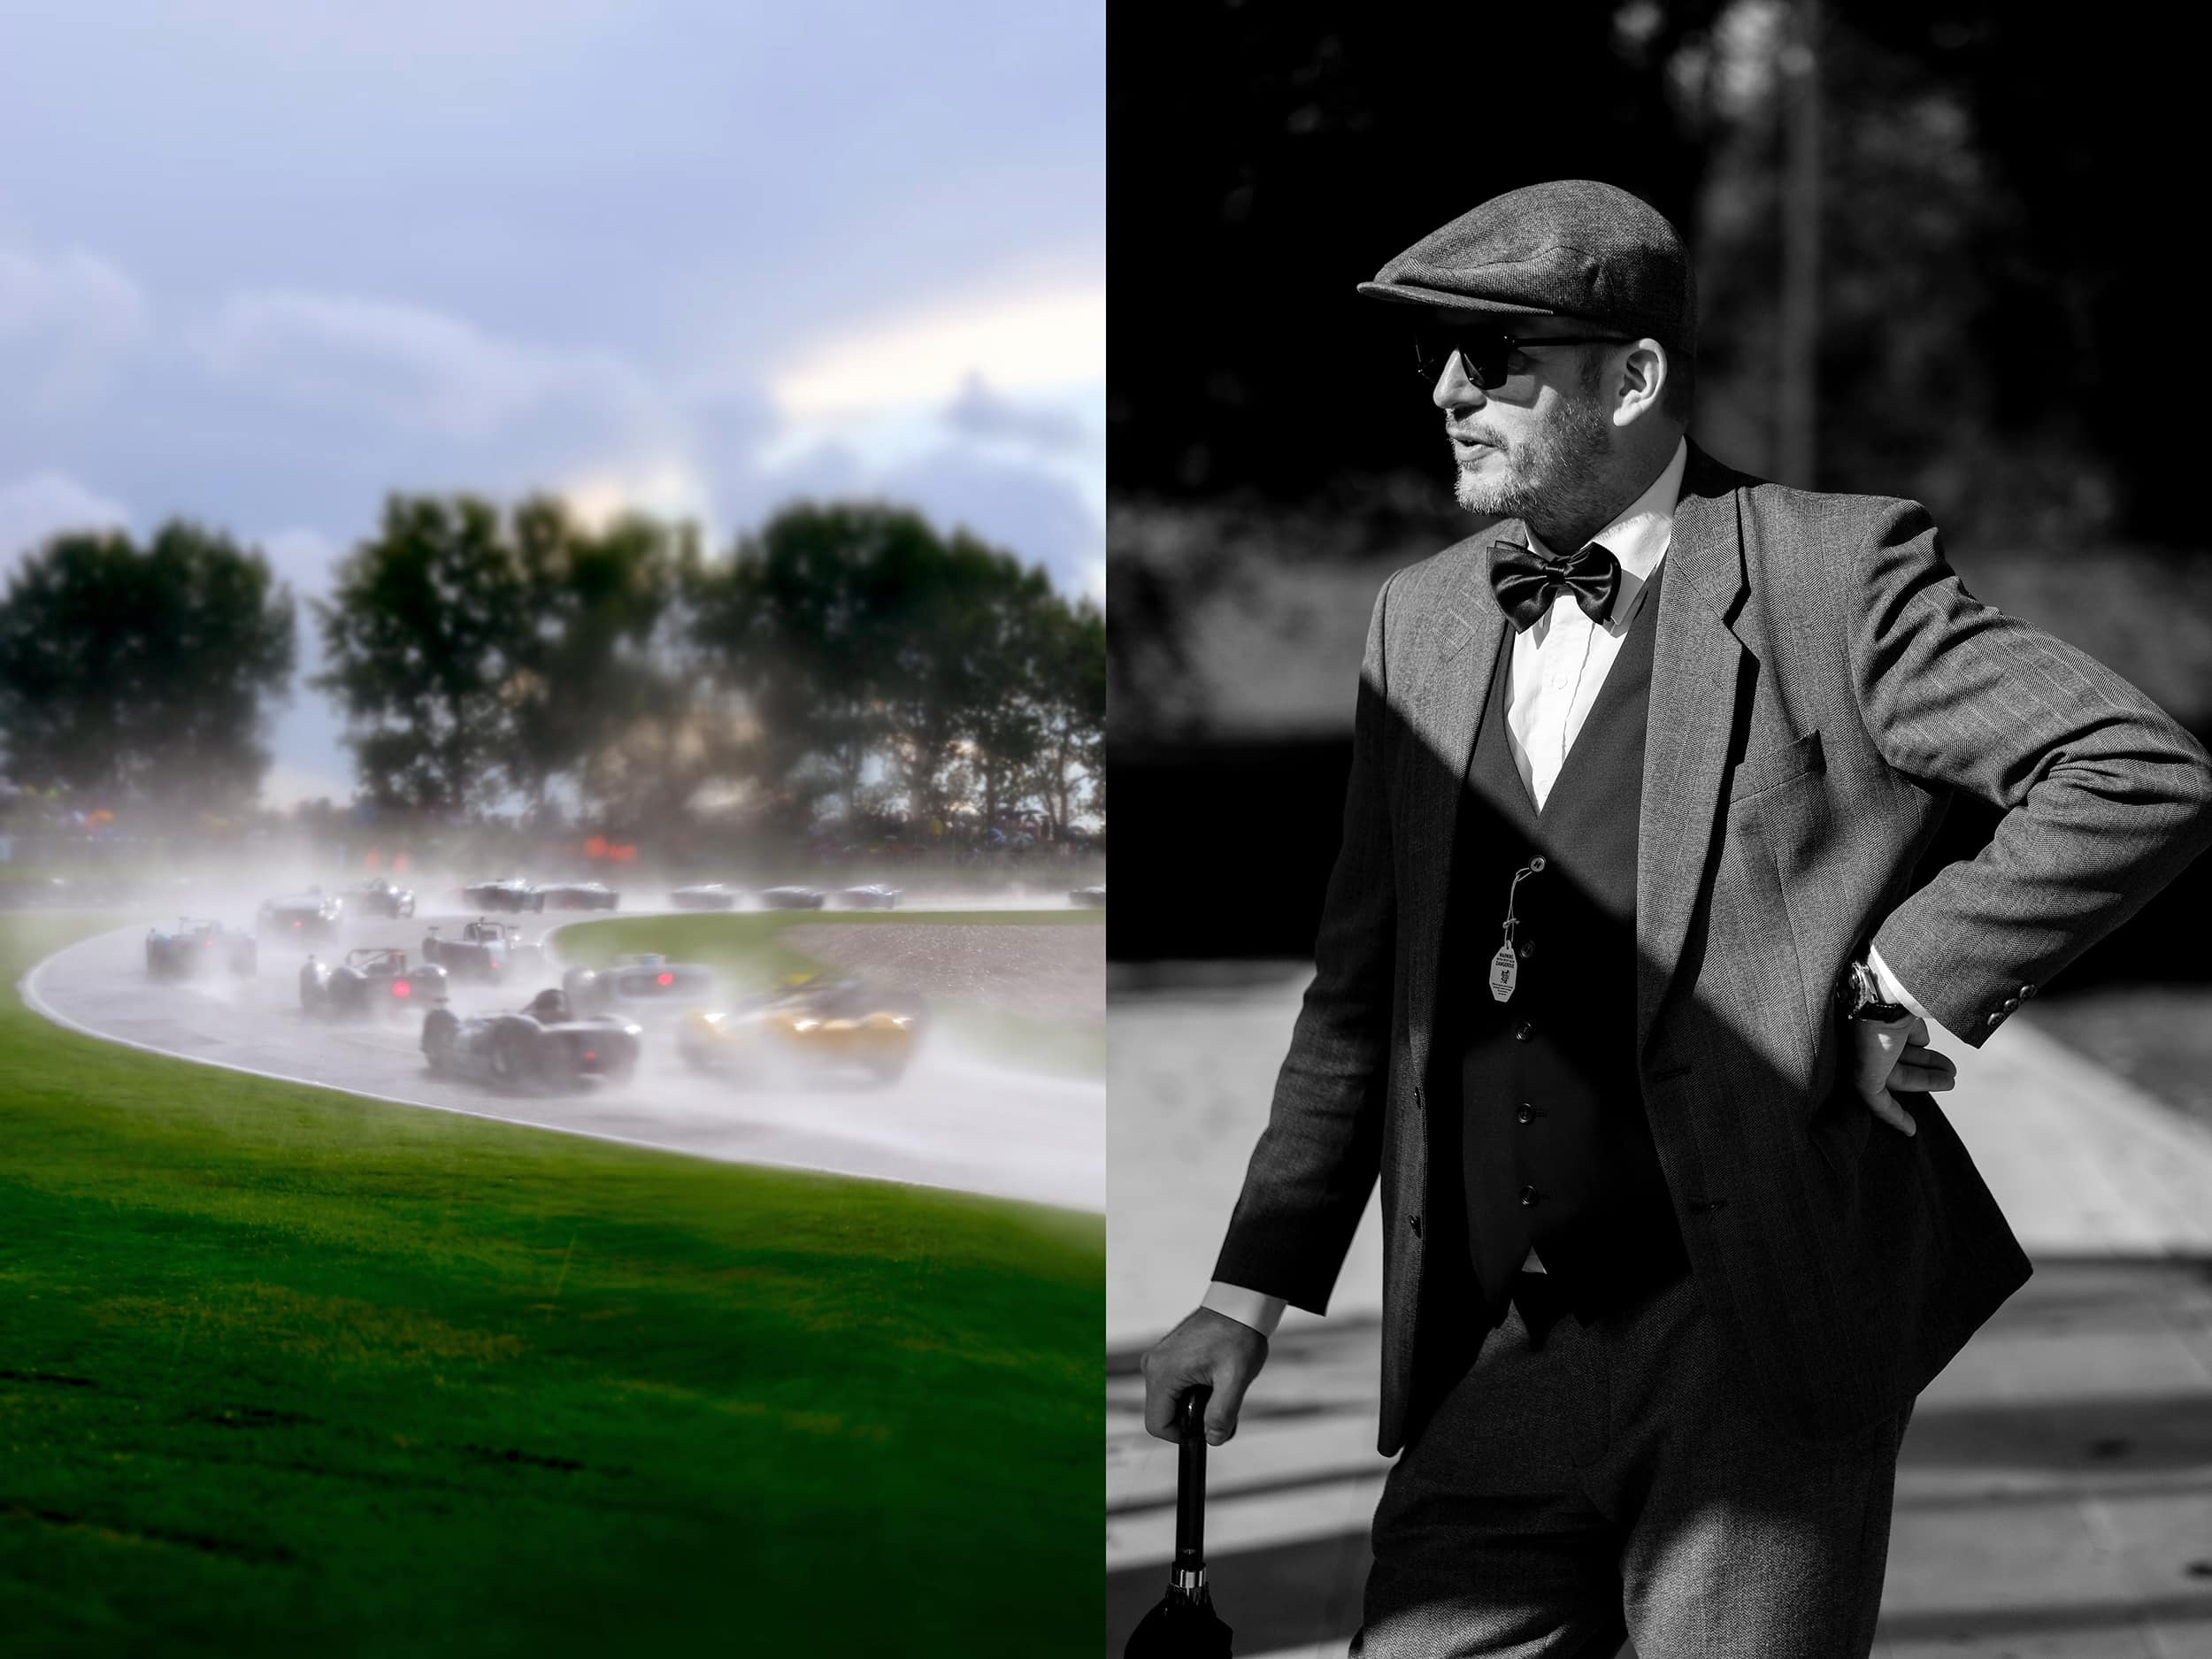 Kimm Saatvedt – Goodwood Revival